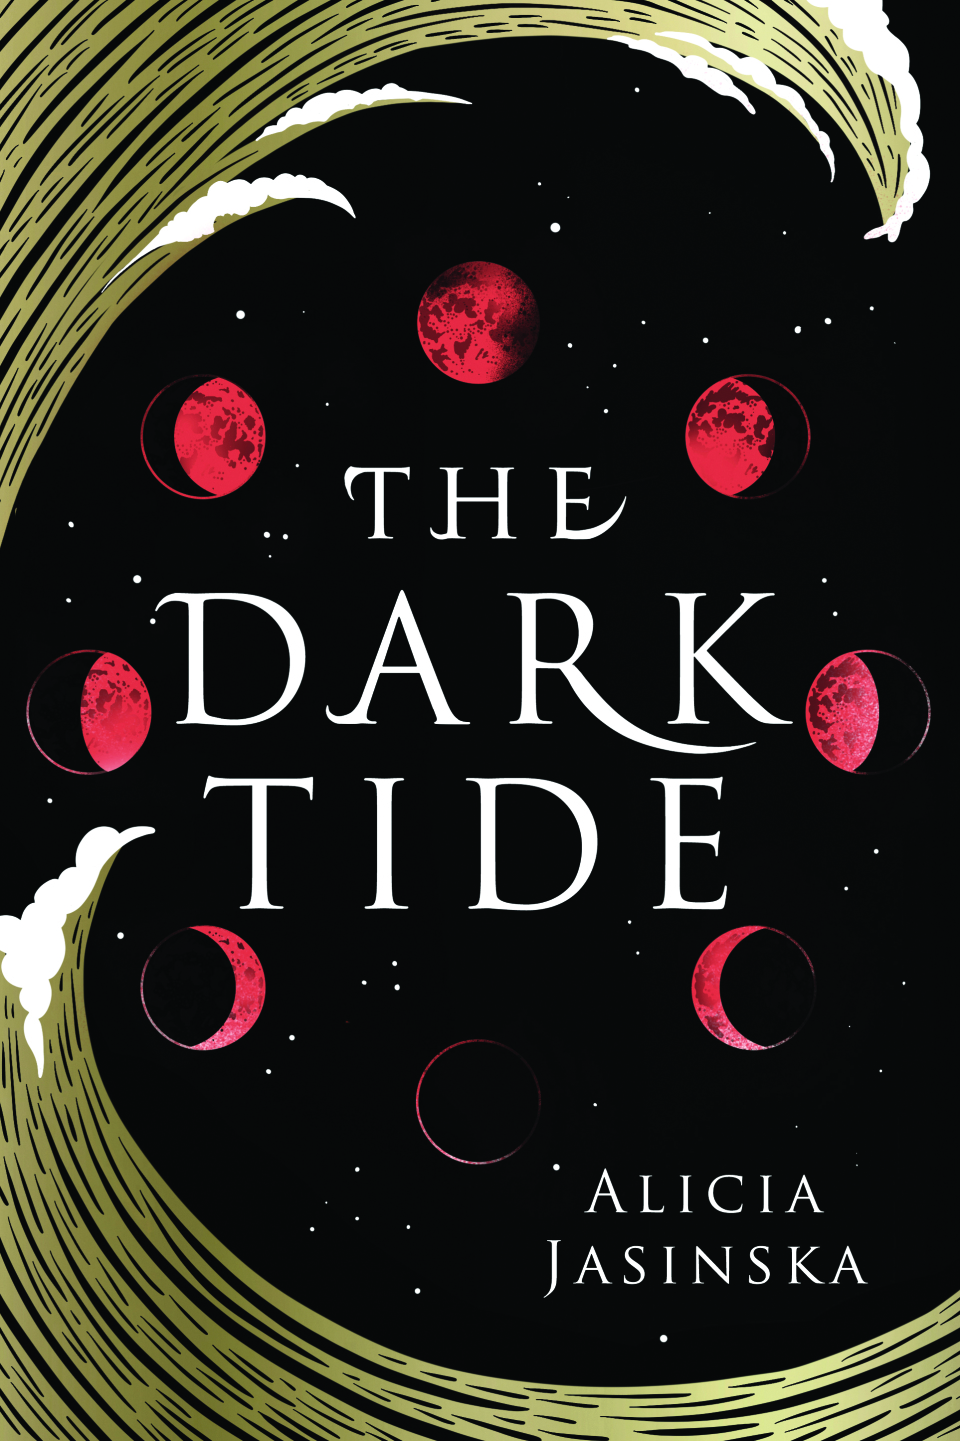 Image result for the dark tide alicia jasinska